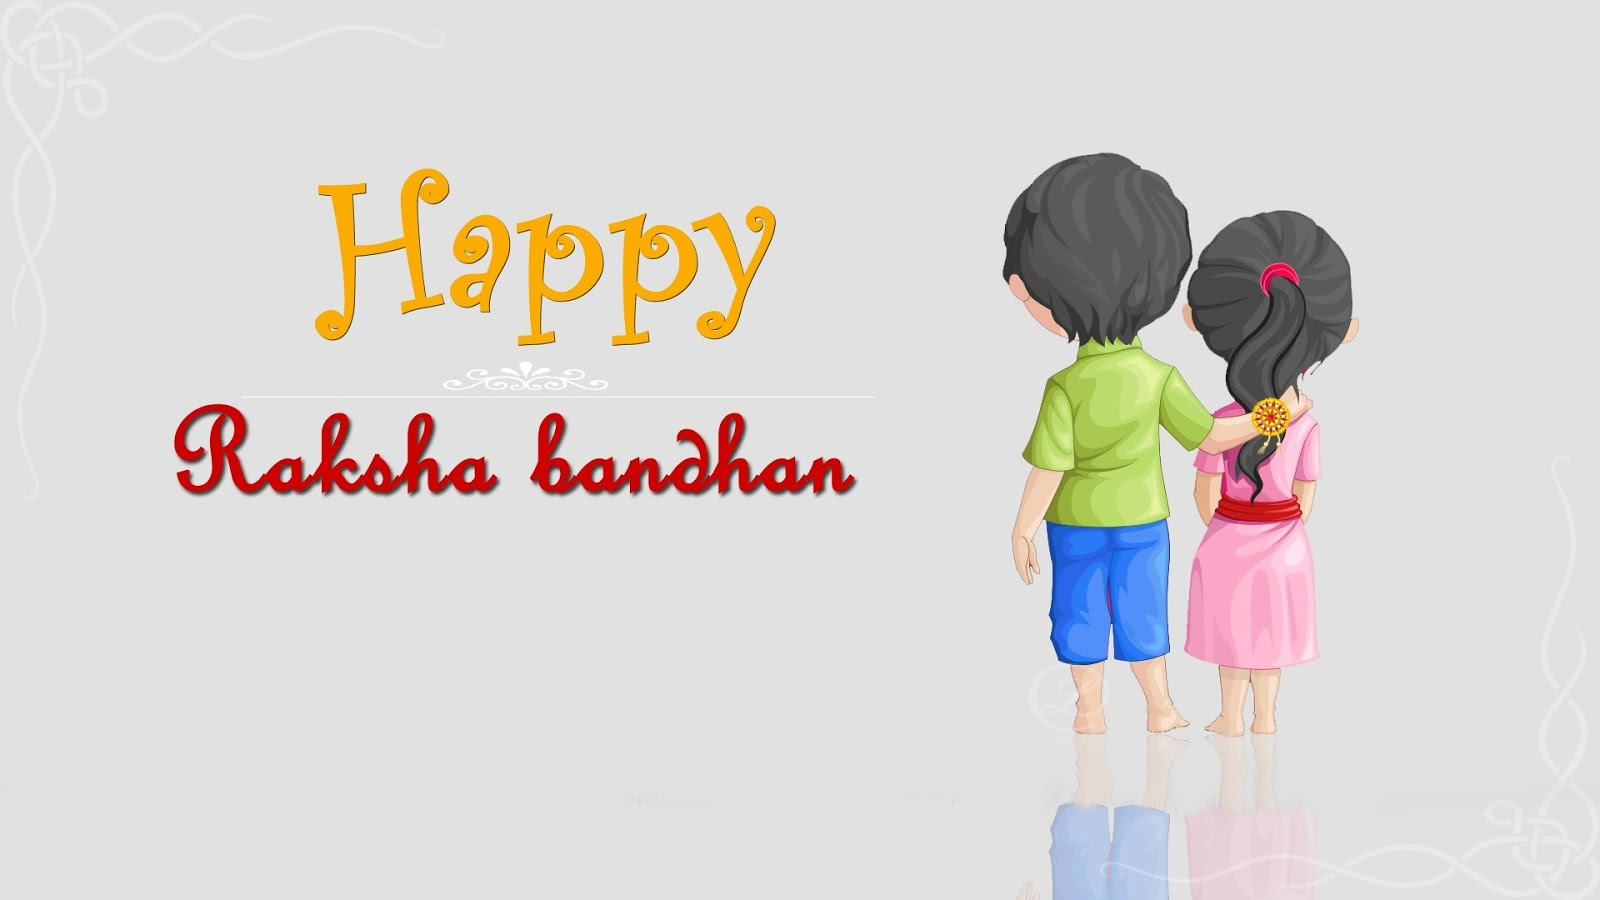 11 Hd Raksha Bandhan Wallpaper Wordzz